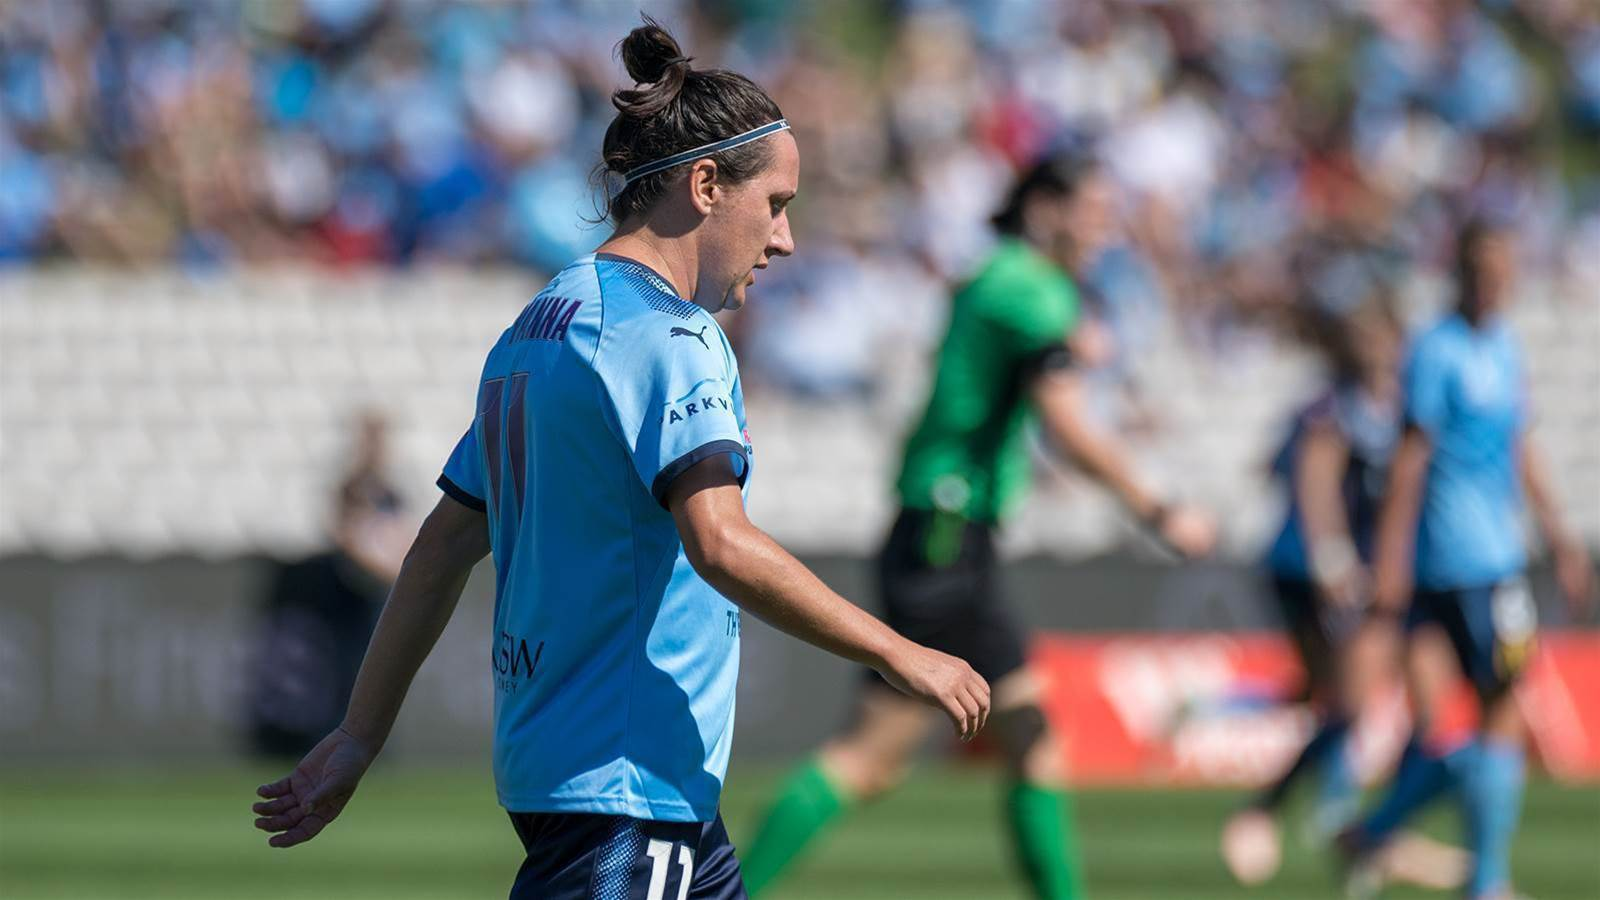 Expansion plans on hold for W-League